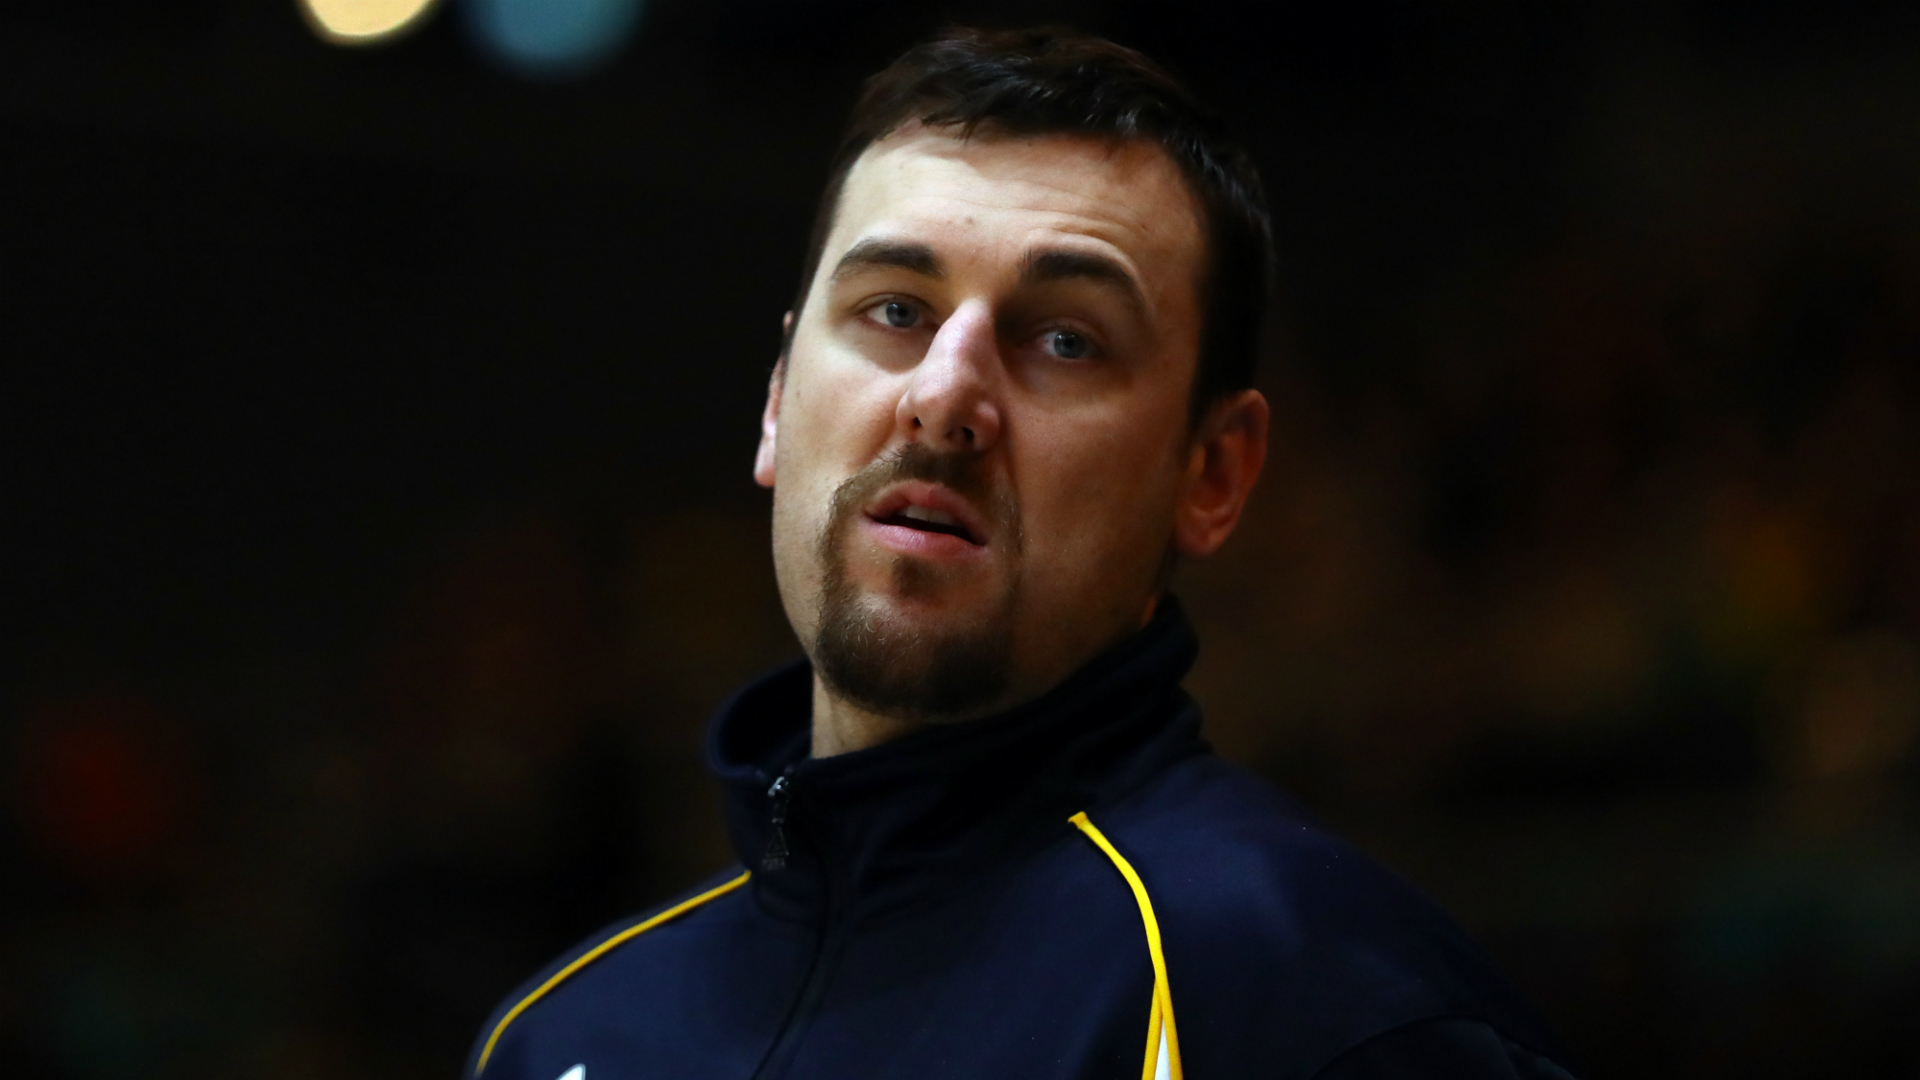 Australian Andrew Bogut signs one-year deal with LA Lakers